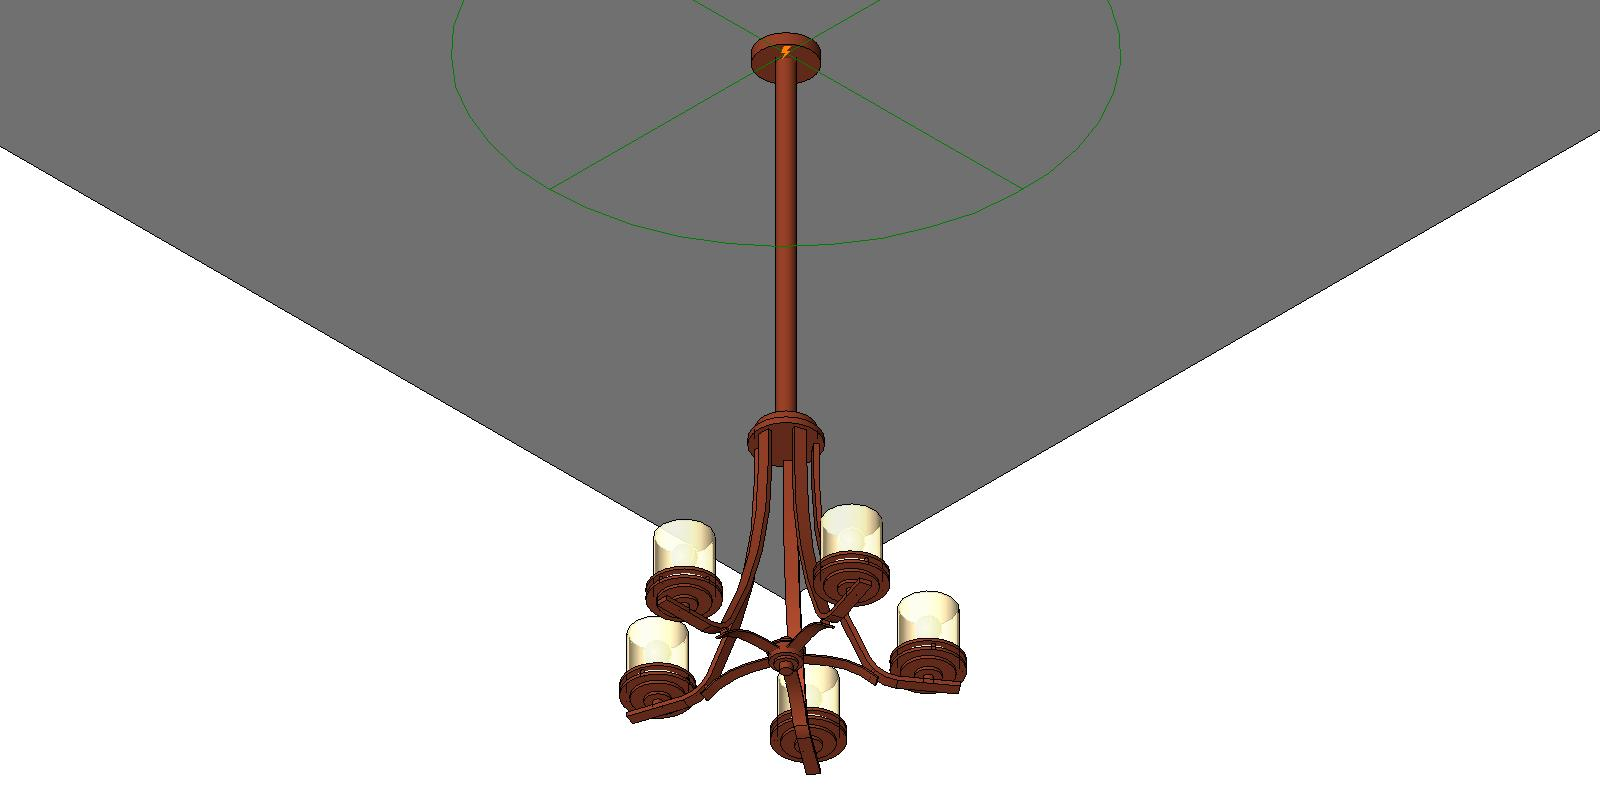 Wall Mounted Light Revit Family : Wall Mounted Light Fixture Revit Family - Light Fixtures